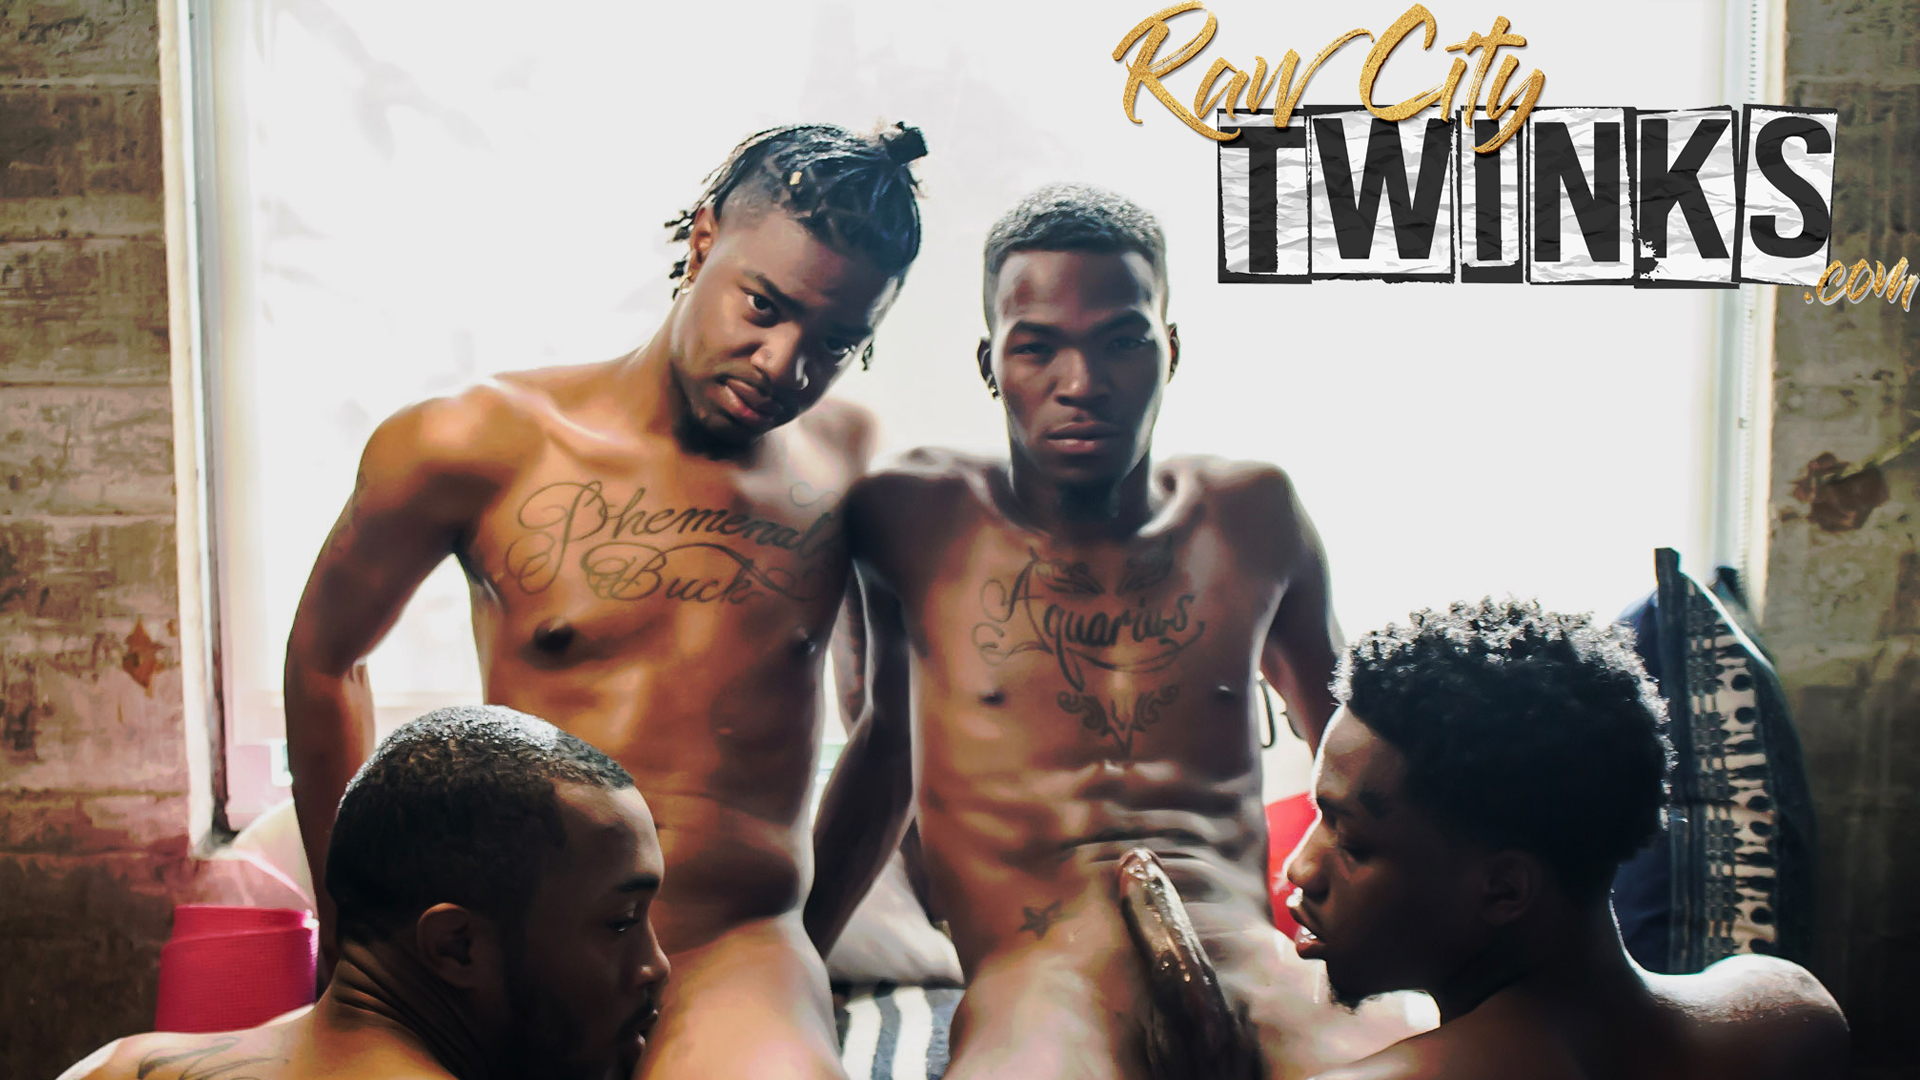 Raw City Twinks